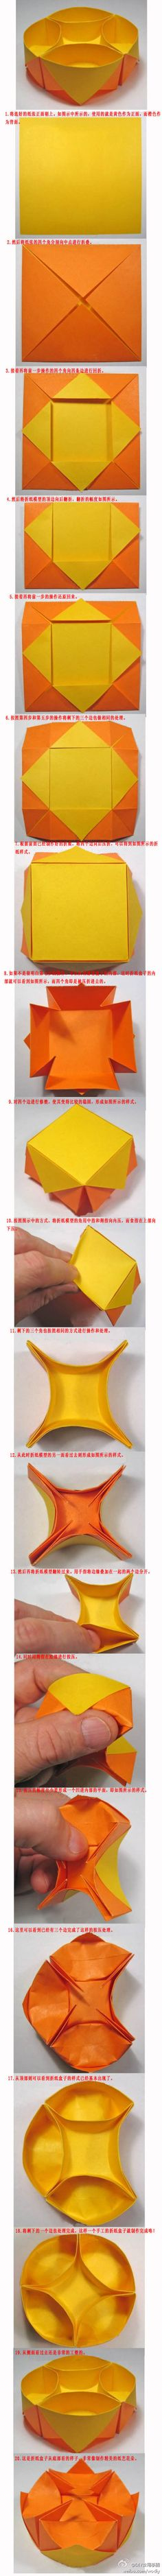 The 172 Best Origami Images On Pinterest In 2018 Paper Envelopes Swantutorial Blue39s Chinese 3d Modular Swan Diagram Fold Conteiner Crafts Diy Papel